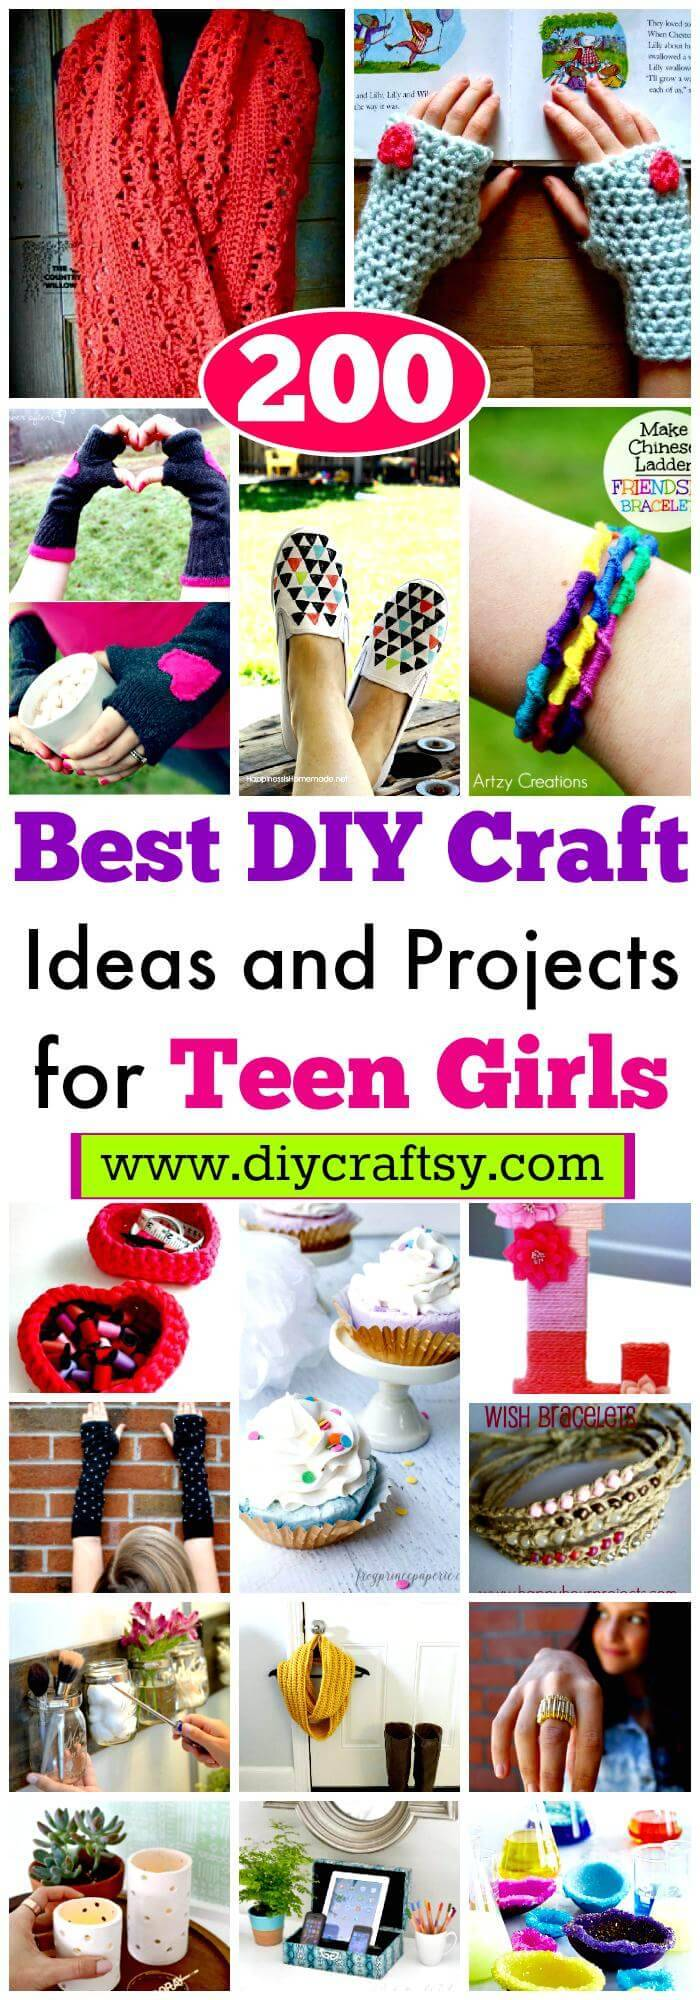 200 Best Diy Craft Ideas And Projects For Teen Girls Diy Crafts